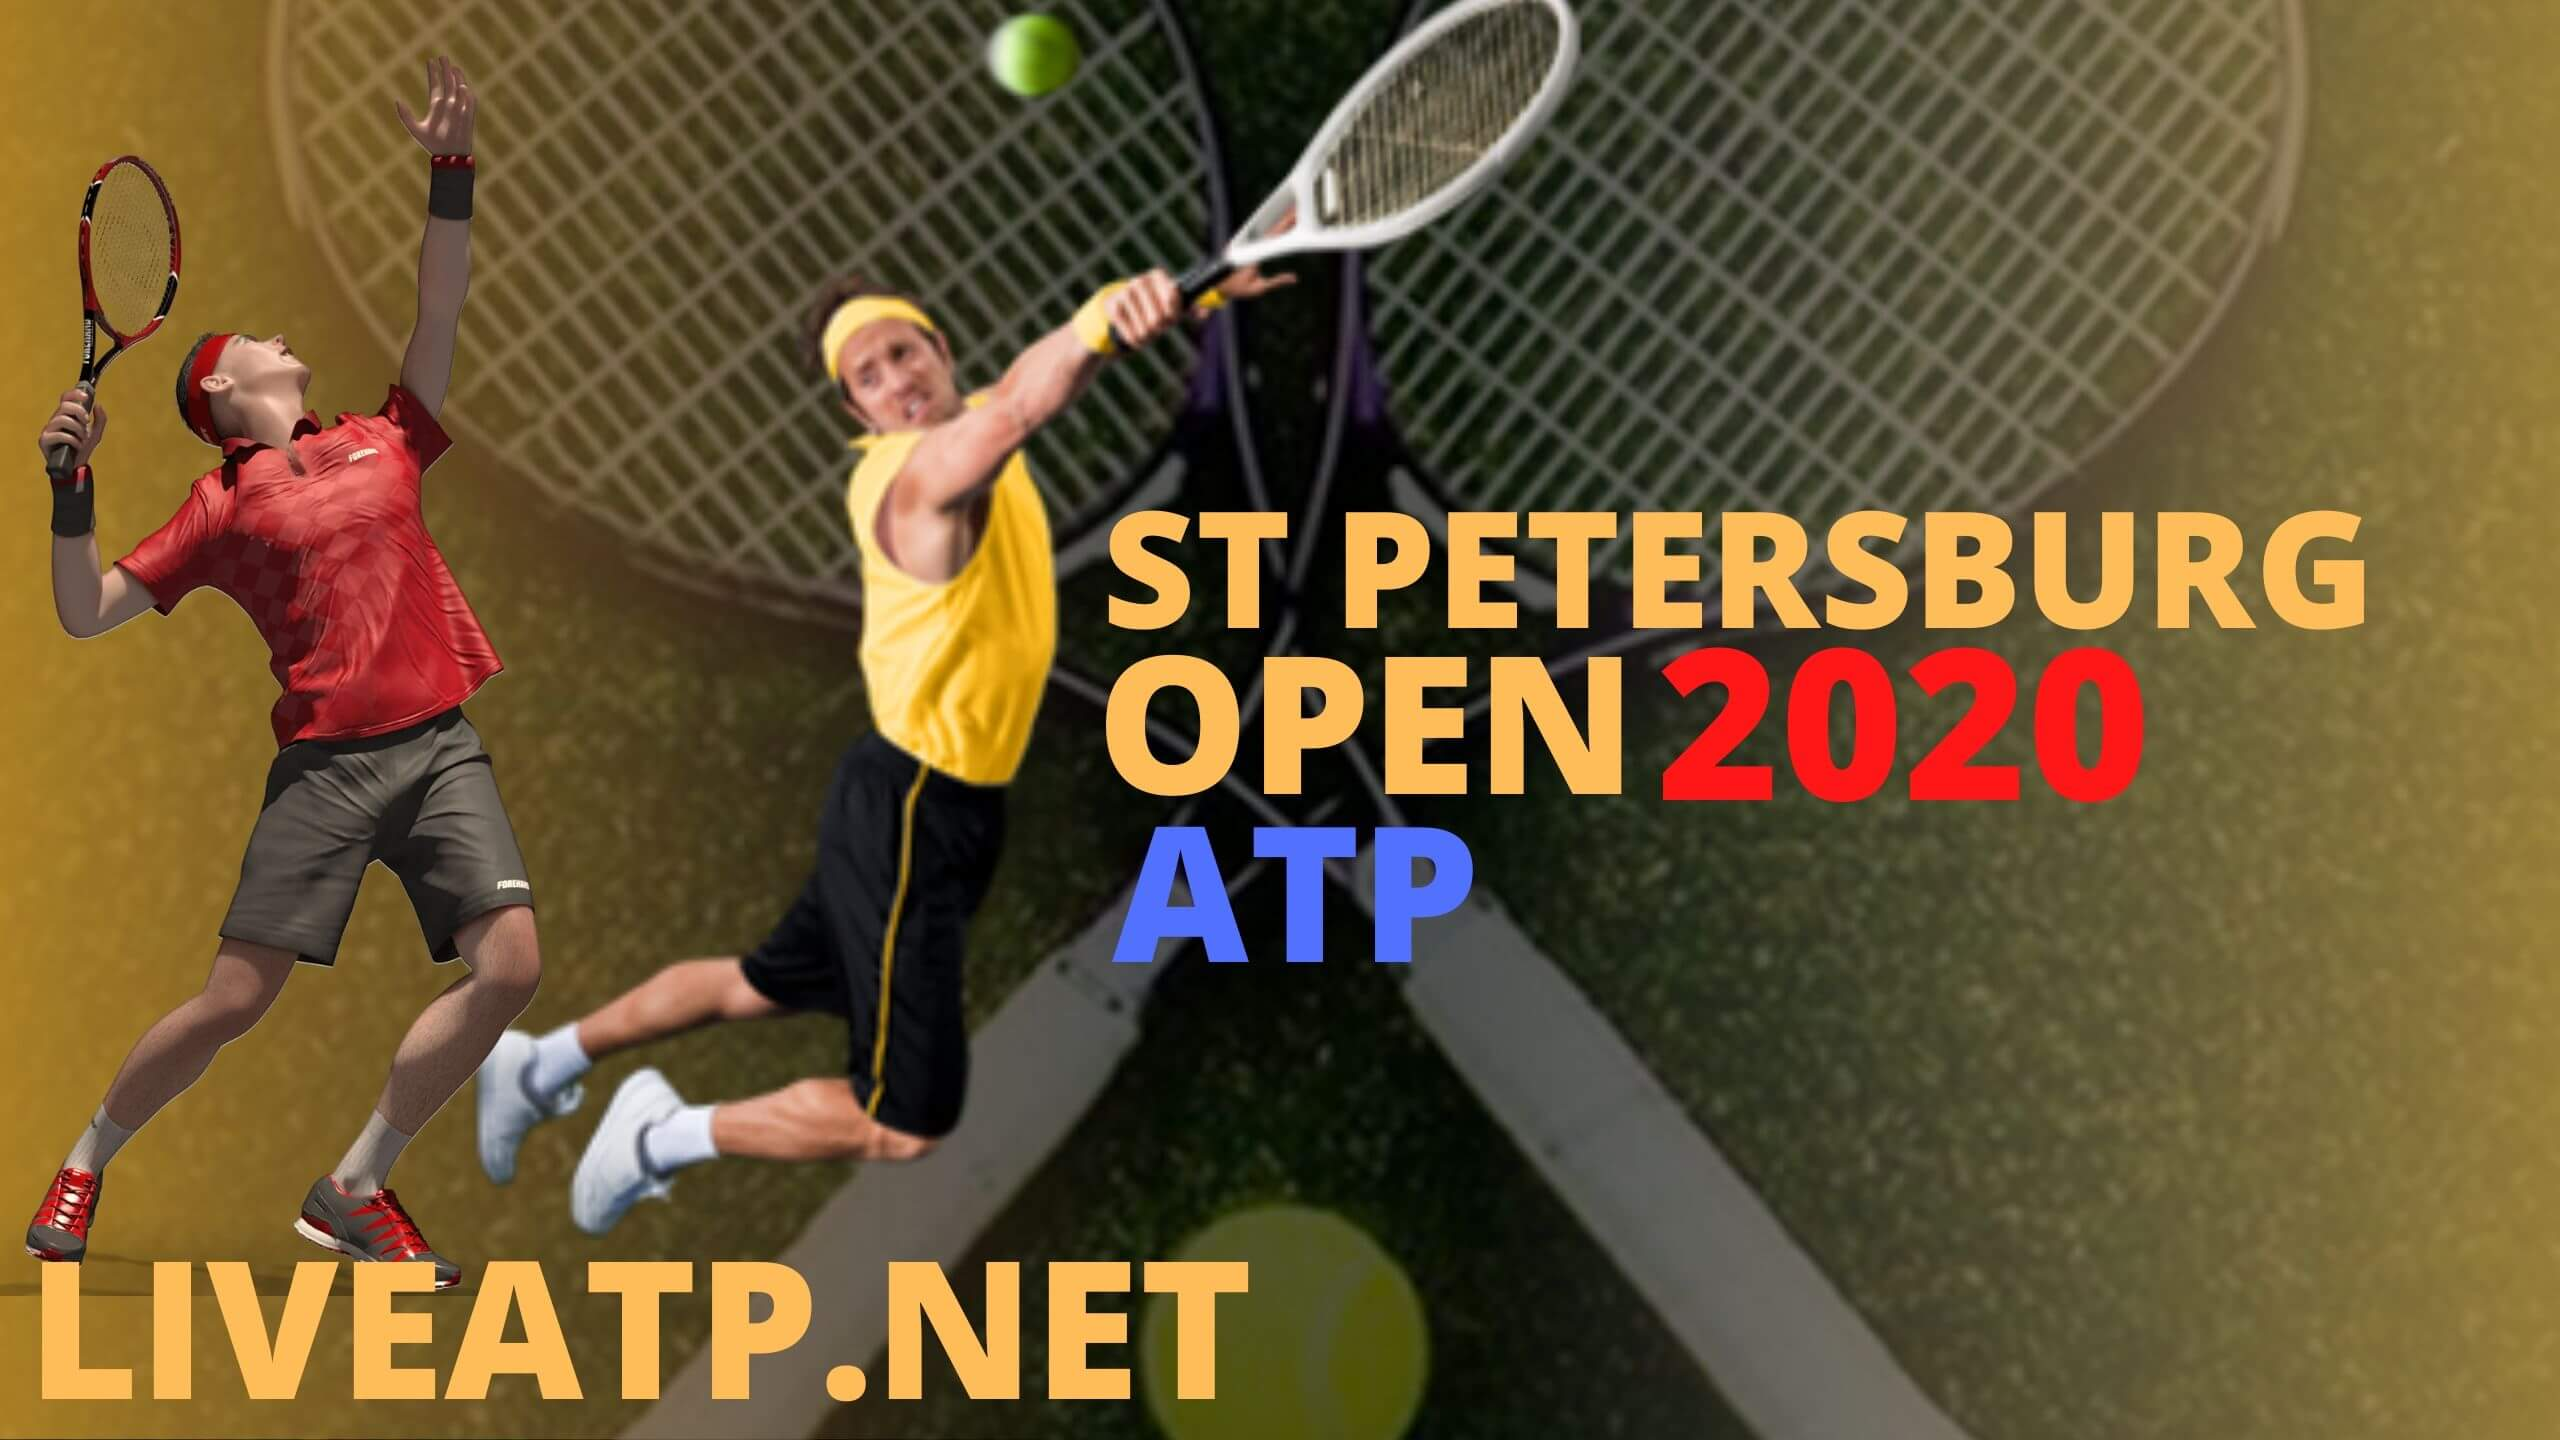 St Petersburg Open Live Stream 2020 | Day 3